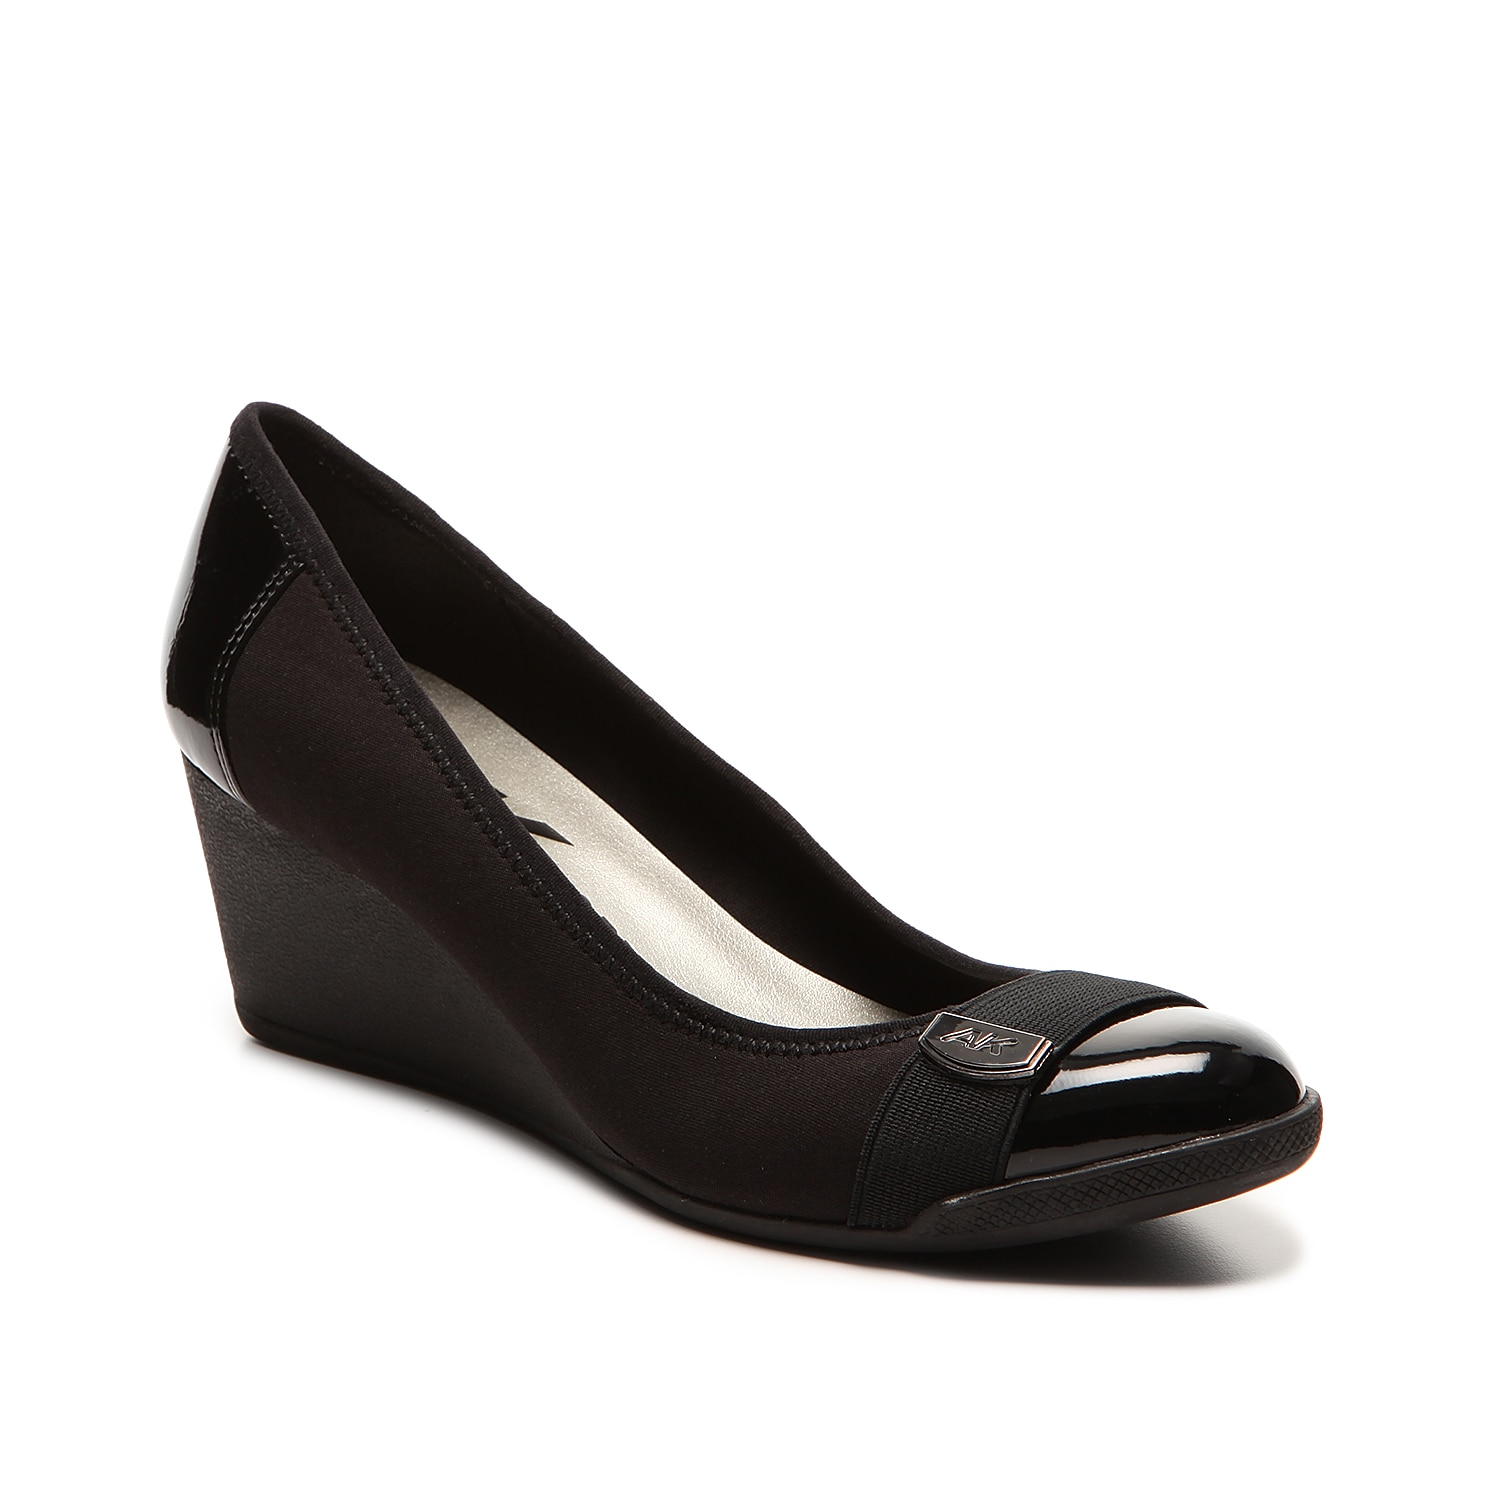 Take style and comfort to the next level with AK Anne Klein Sport. The Tatum wedge pump has patent accents, perfect for your sophisticated looks.